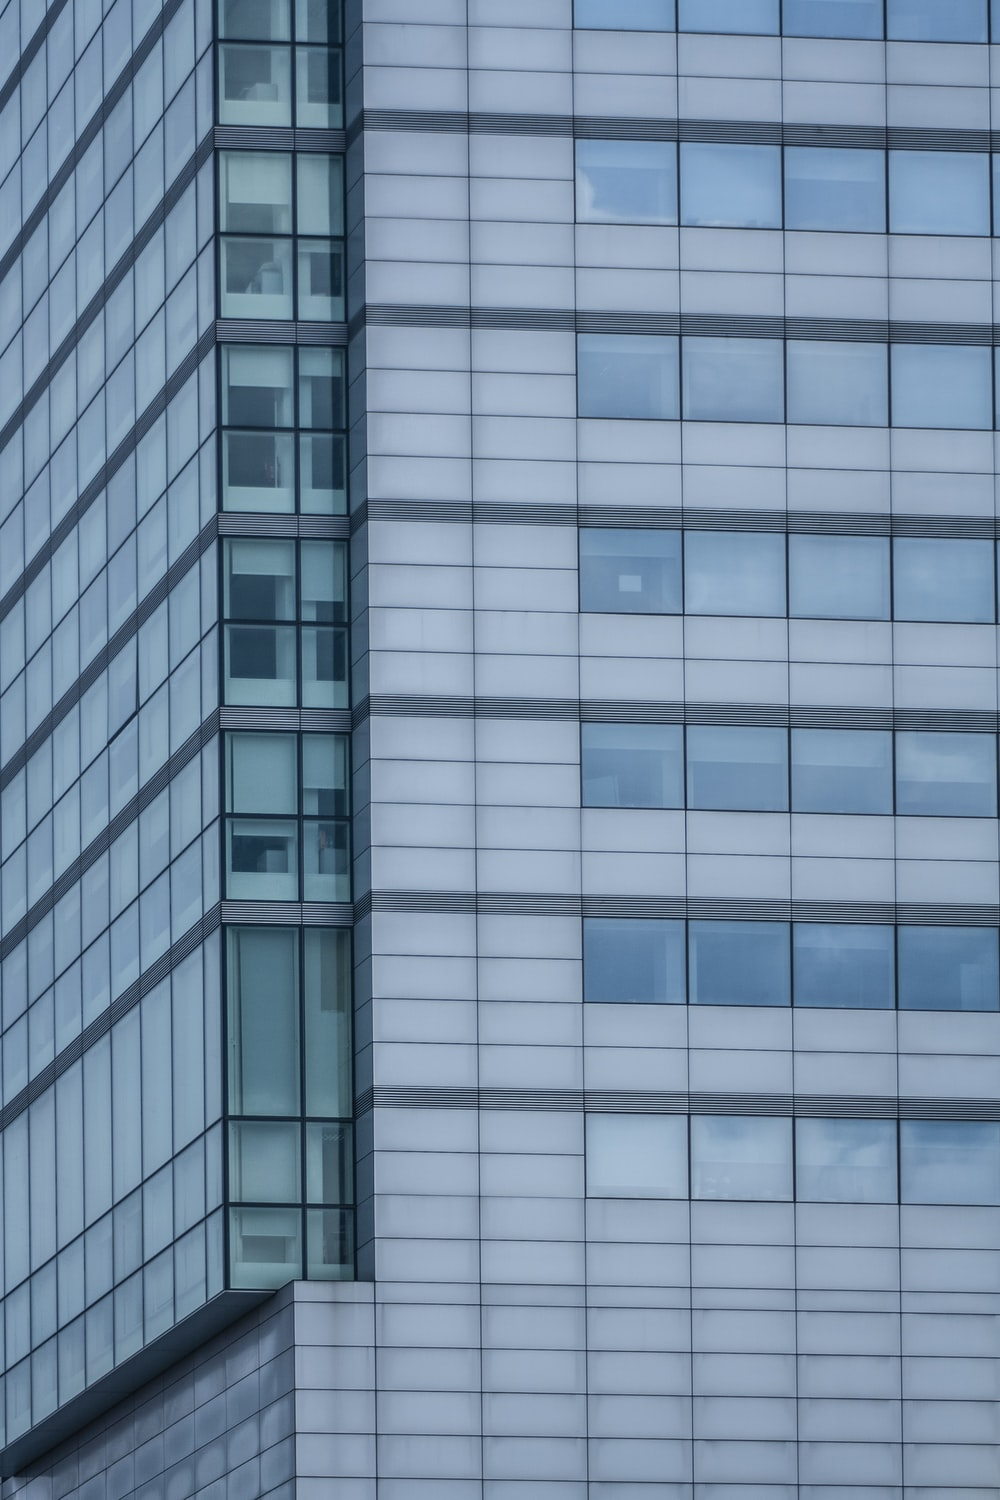 glass walled high rise building